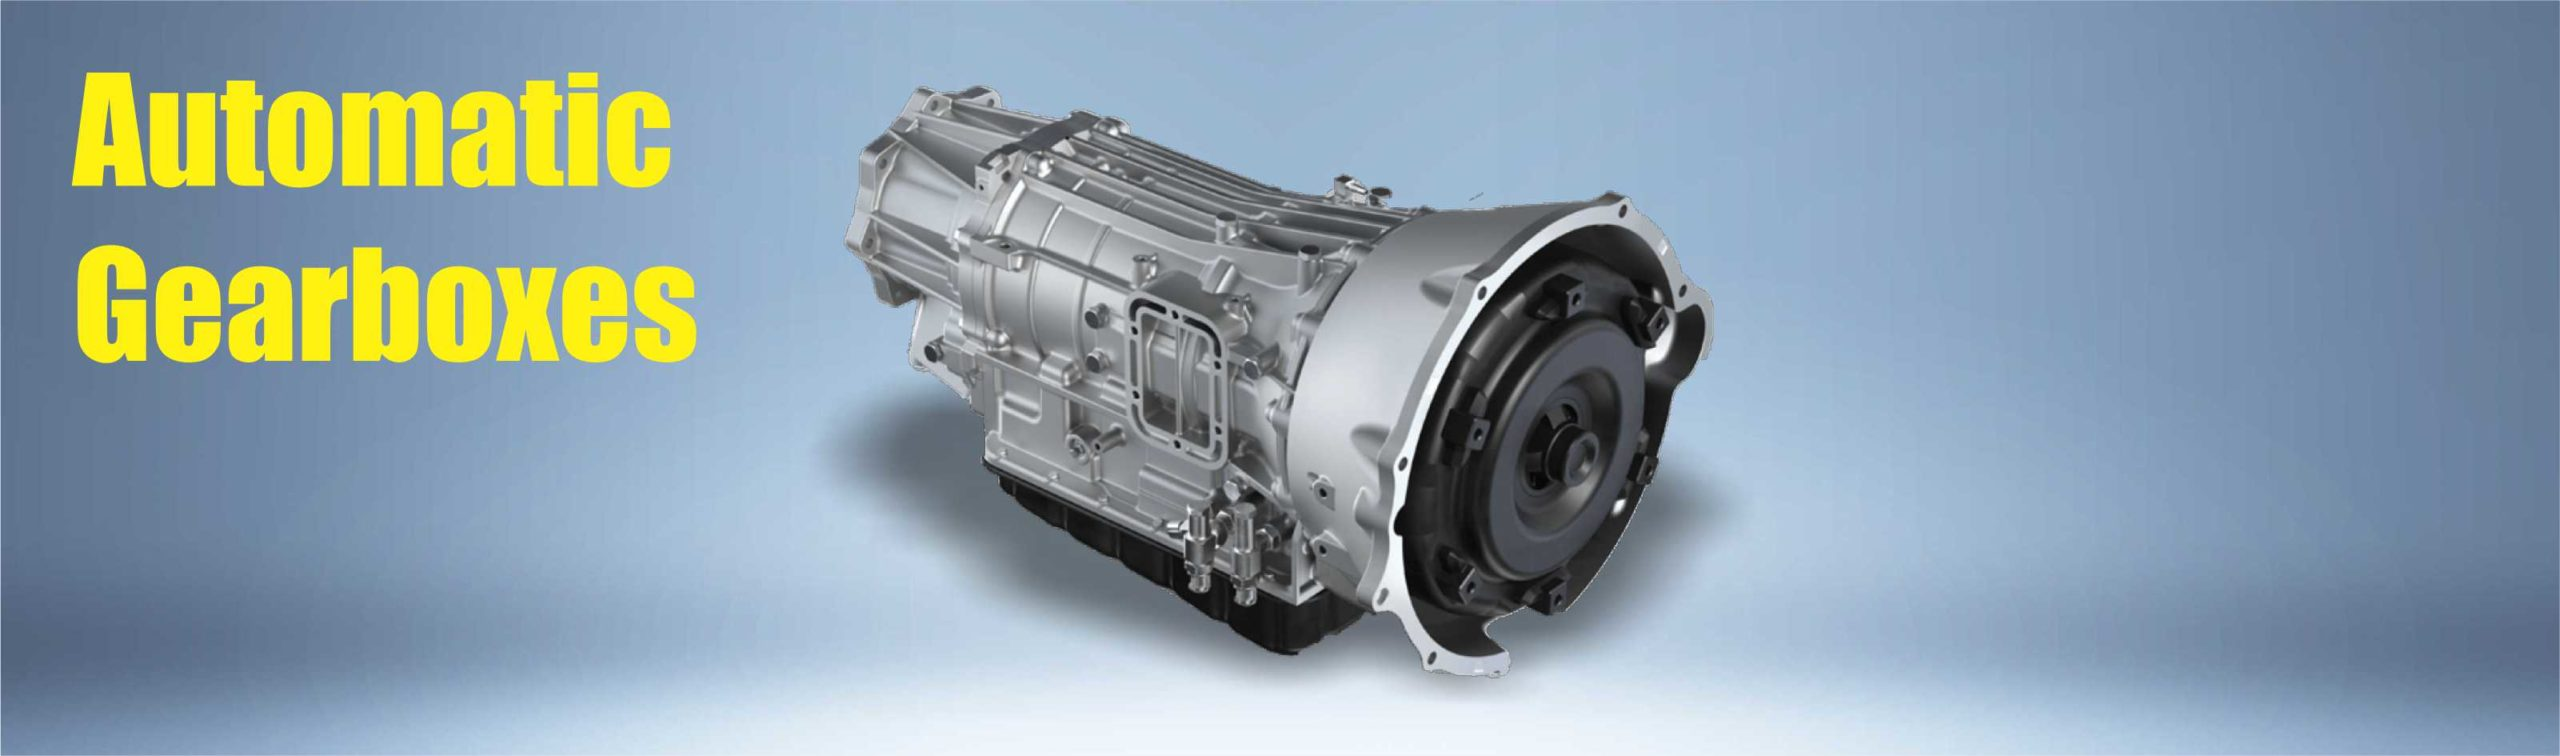 Auto Gearboxes